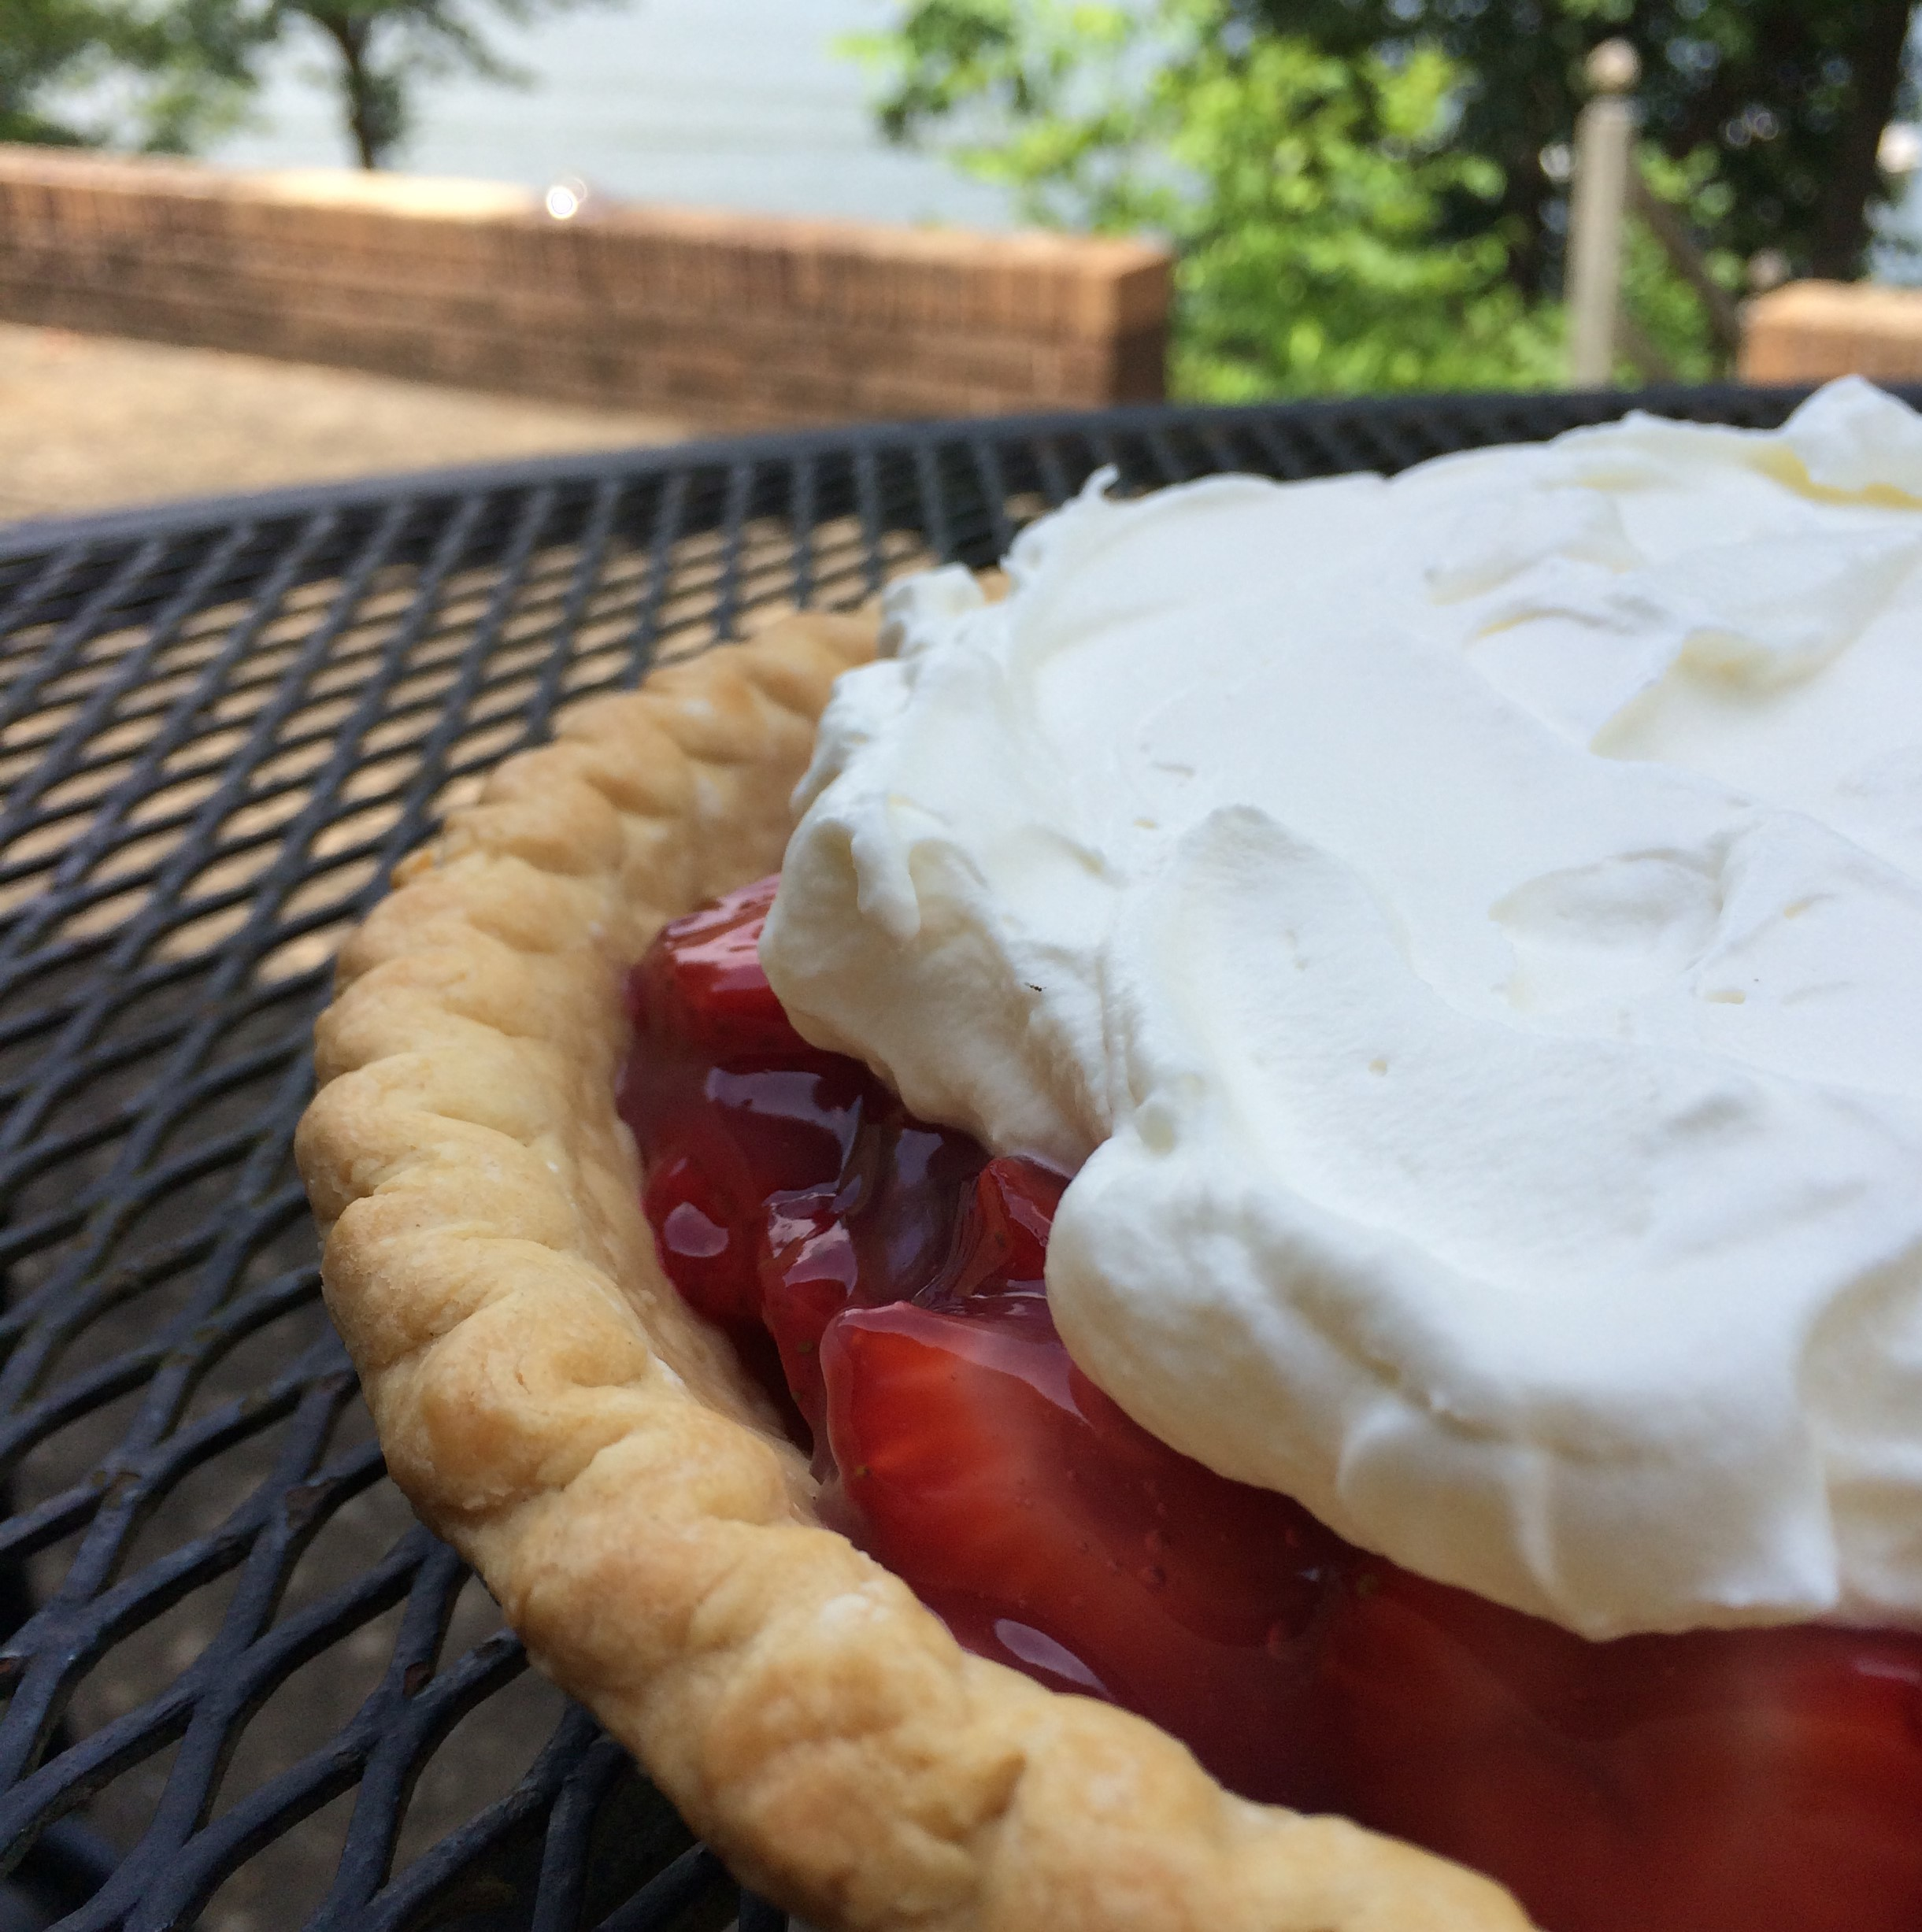 Summer Fresh Strawberry Pie Susanna1210